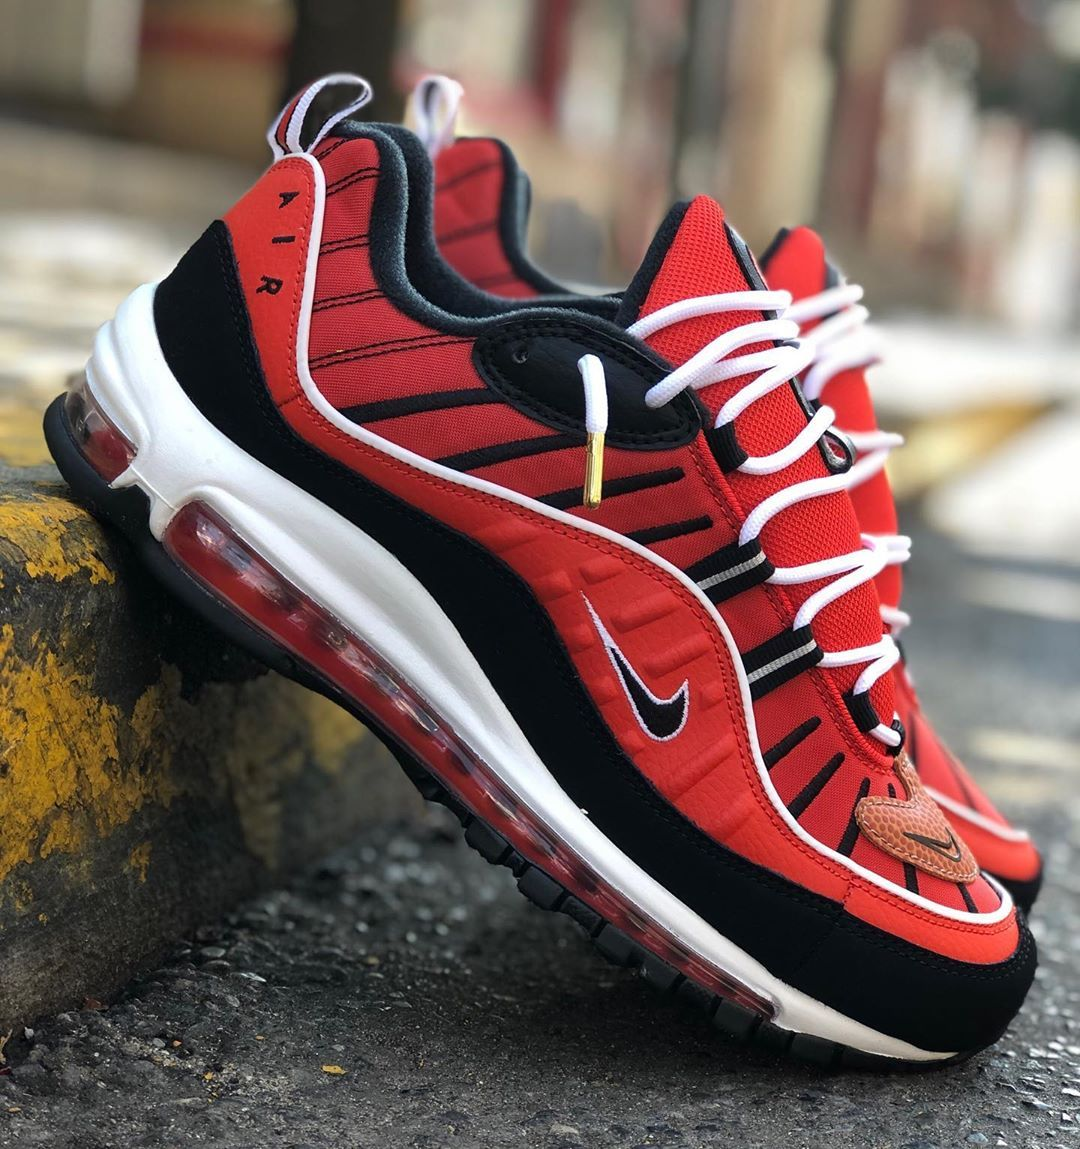 NIKE AIR MAX 98 AOP 'BLACKWHITE' $80.00 | Sneaker Steal